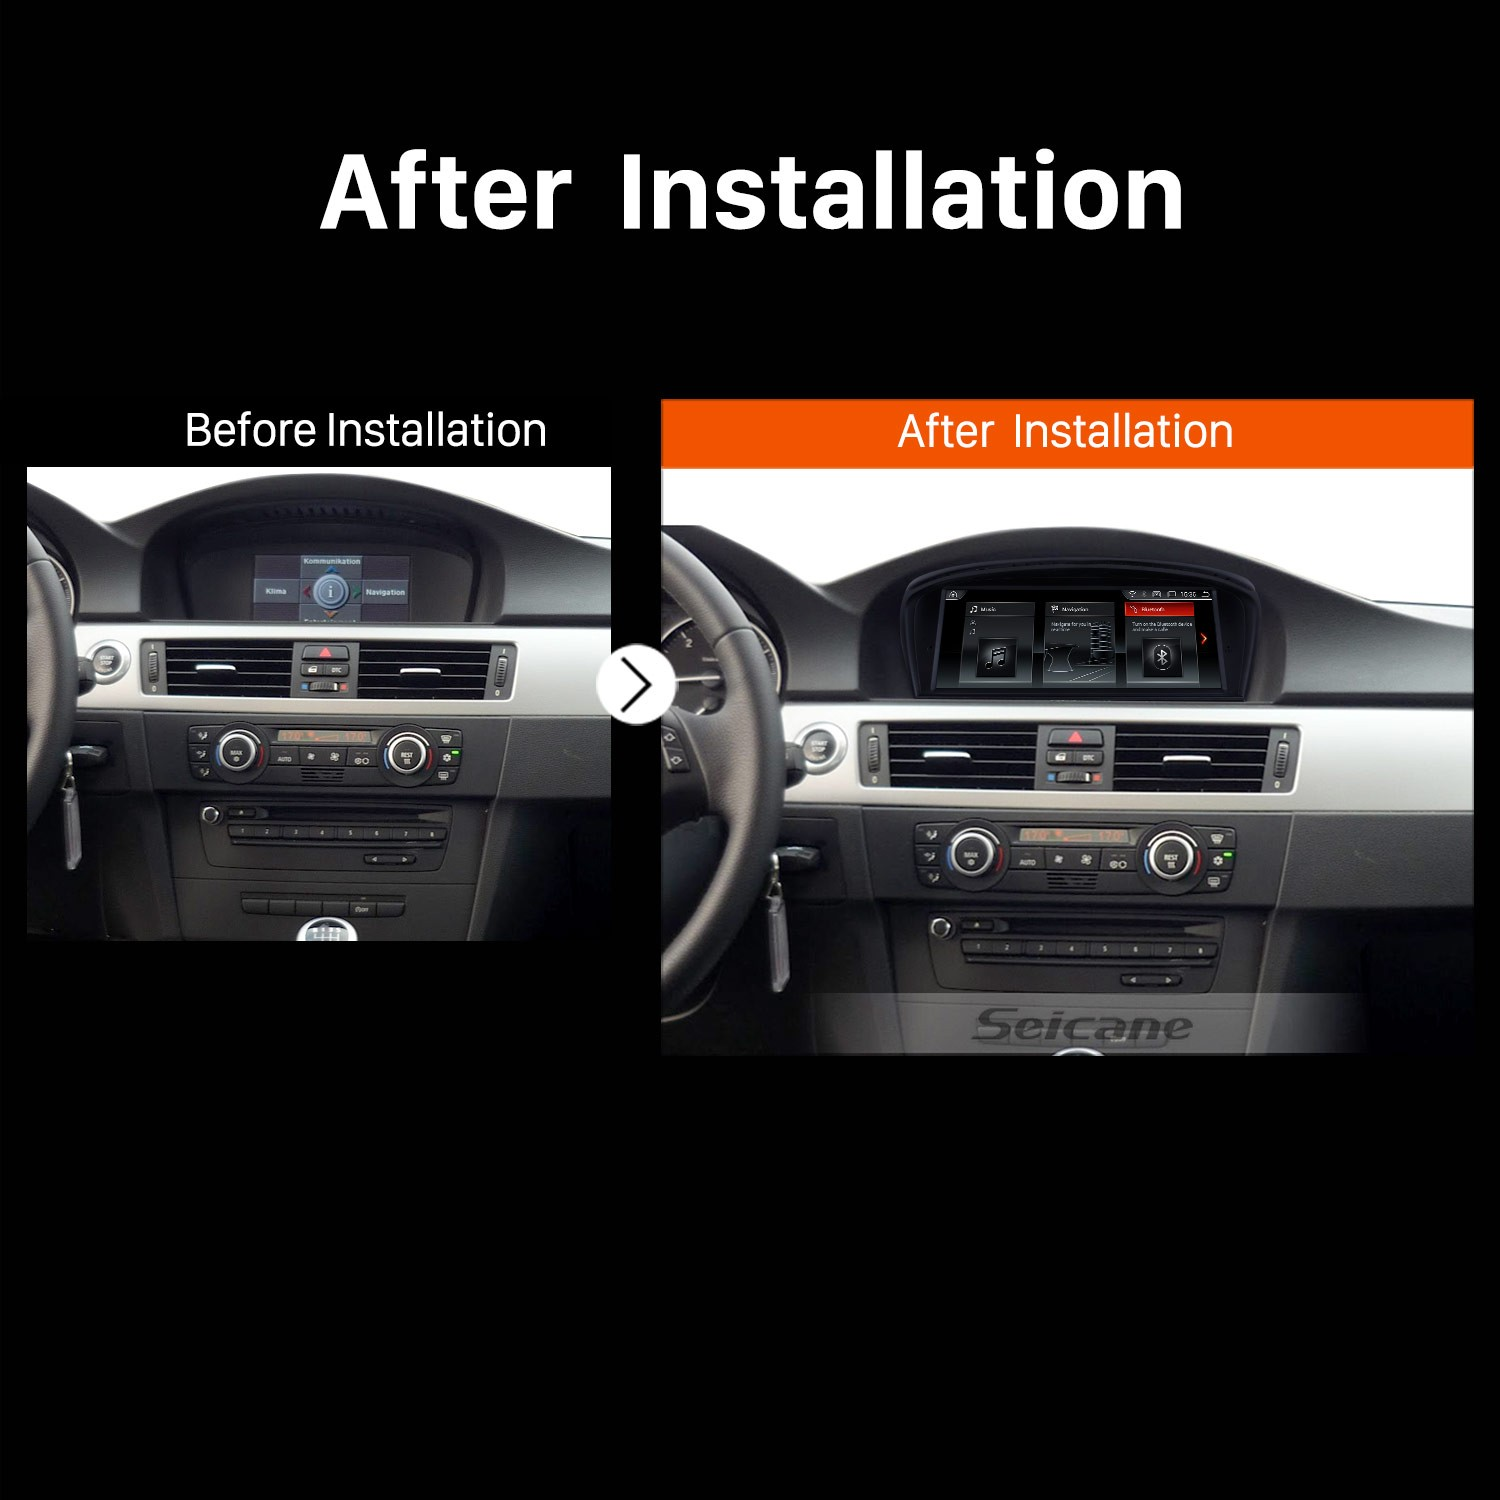 8 8 inch Android 8 1 Touchscreen Radio for 2009-2012 BMW 3 Series